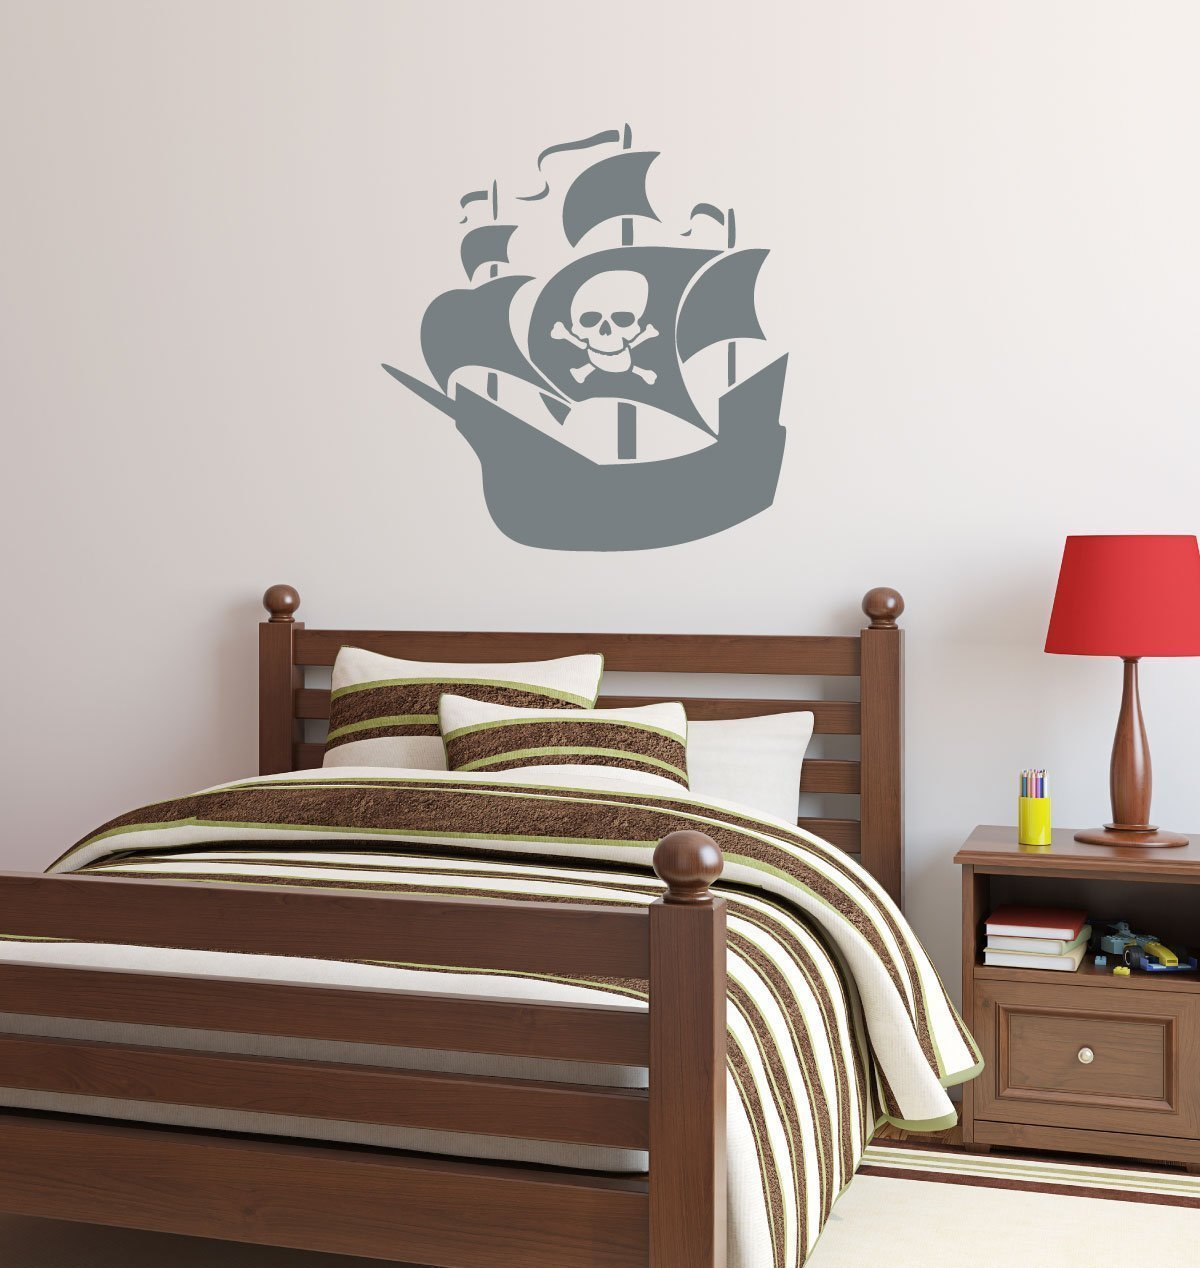 Pirate ship Personalized Name vinyl wall decal art sticker boys room decor